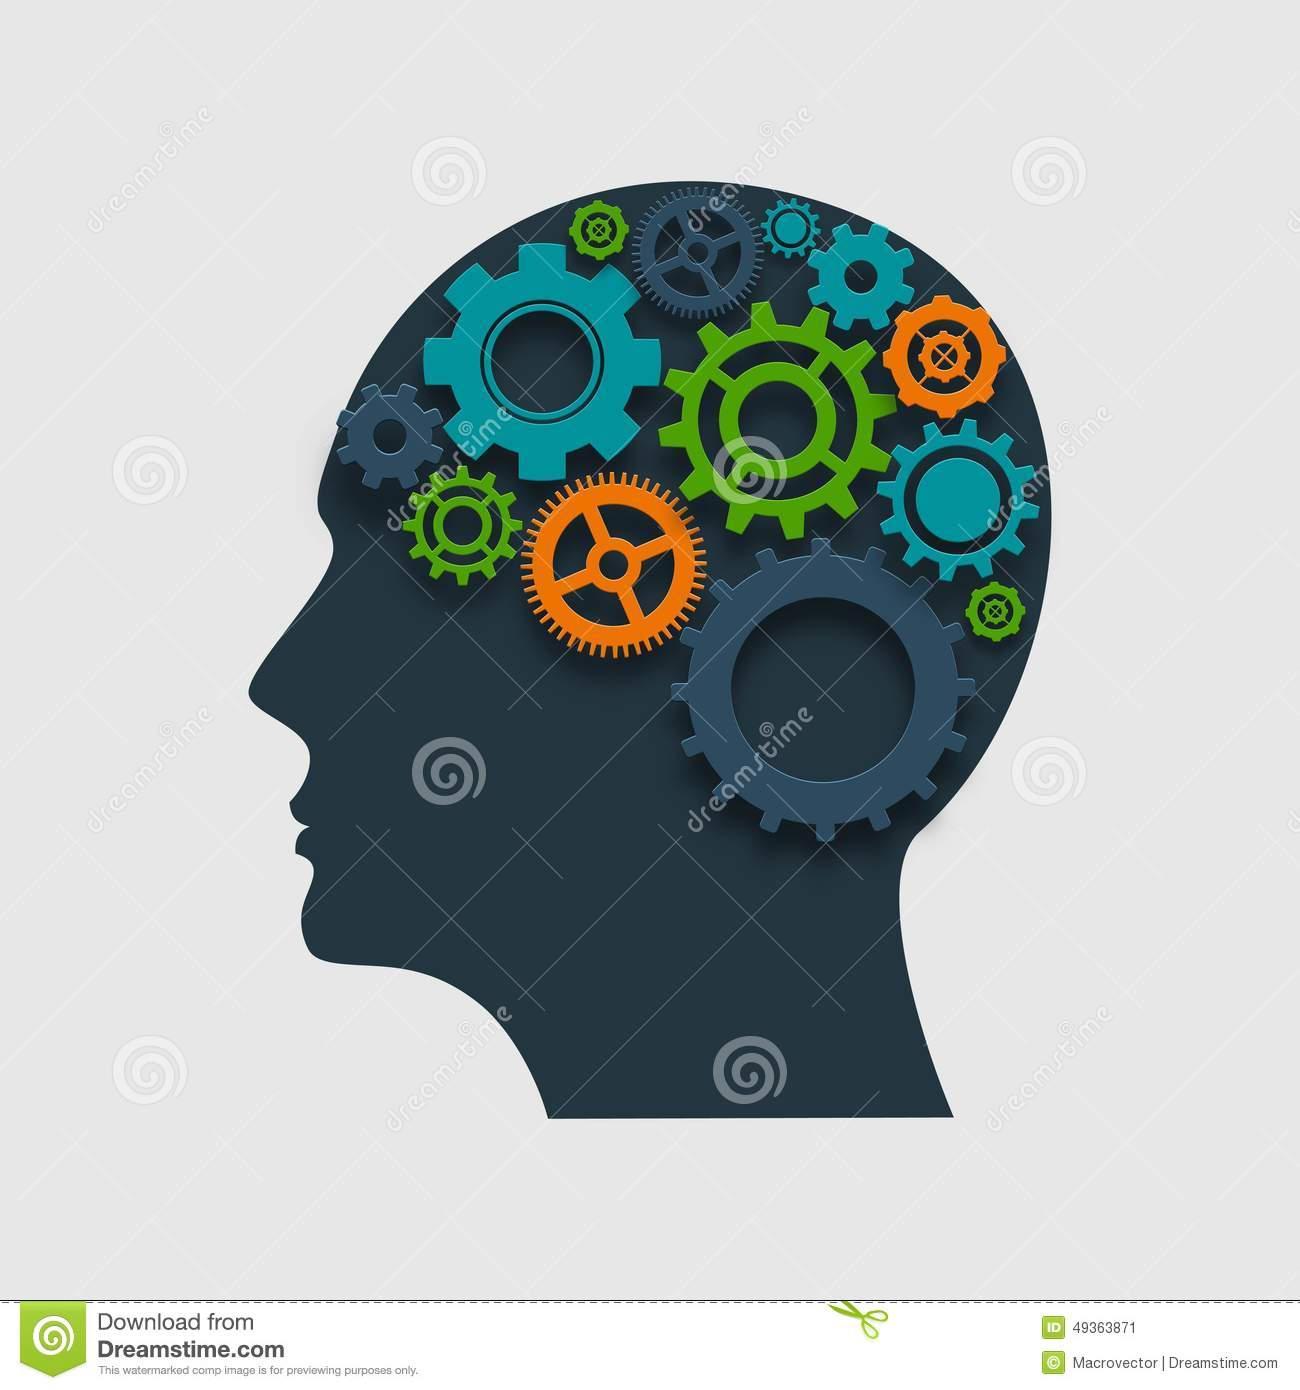 Thinking Mechanism Stock Photos, Images, & Pictures.